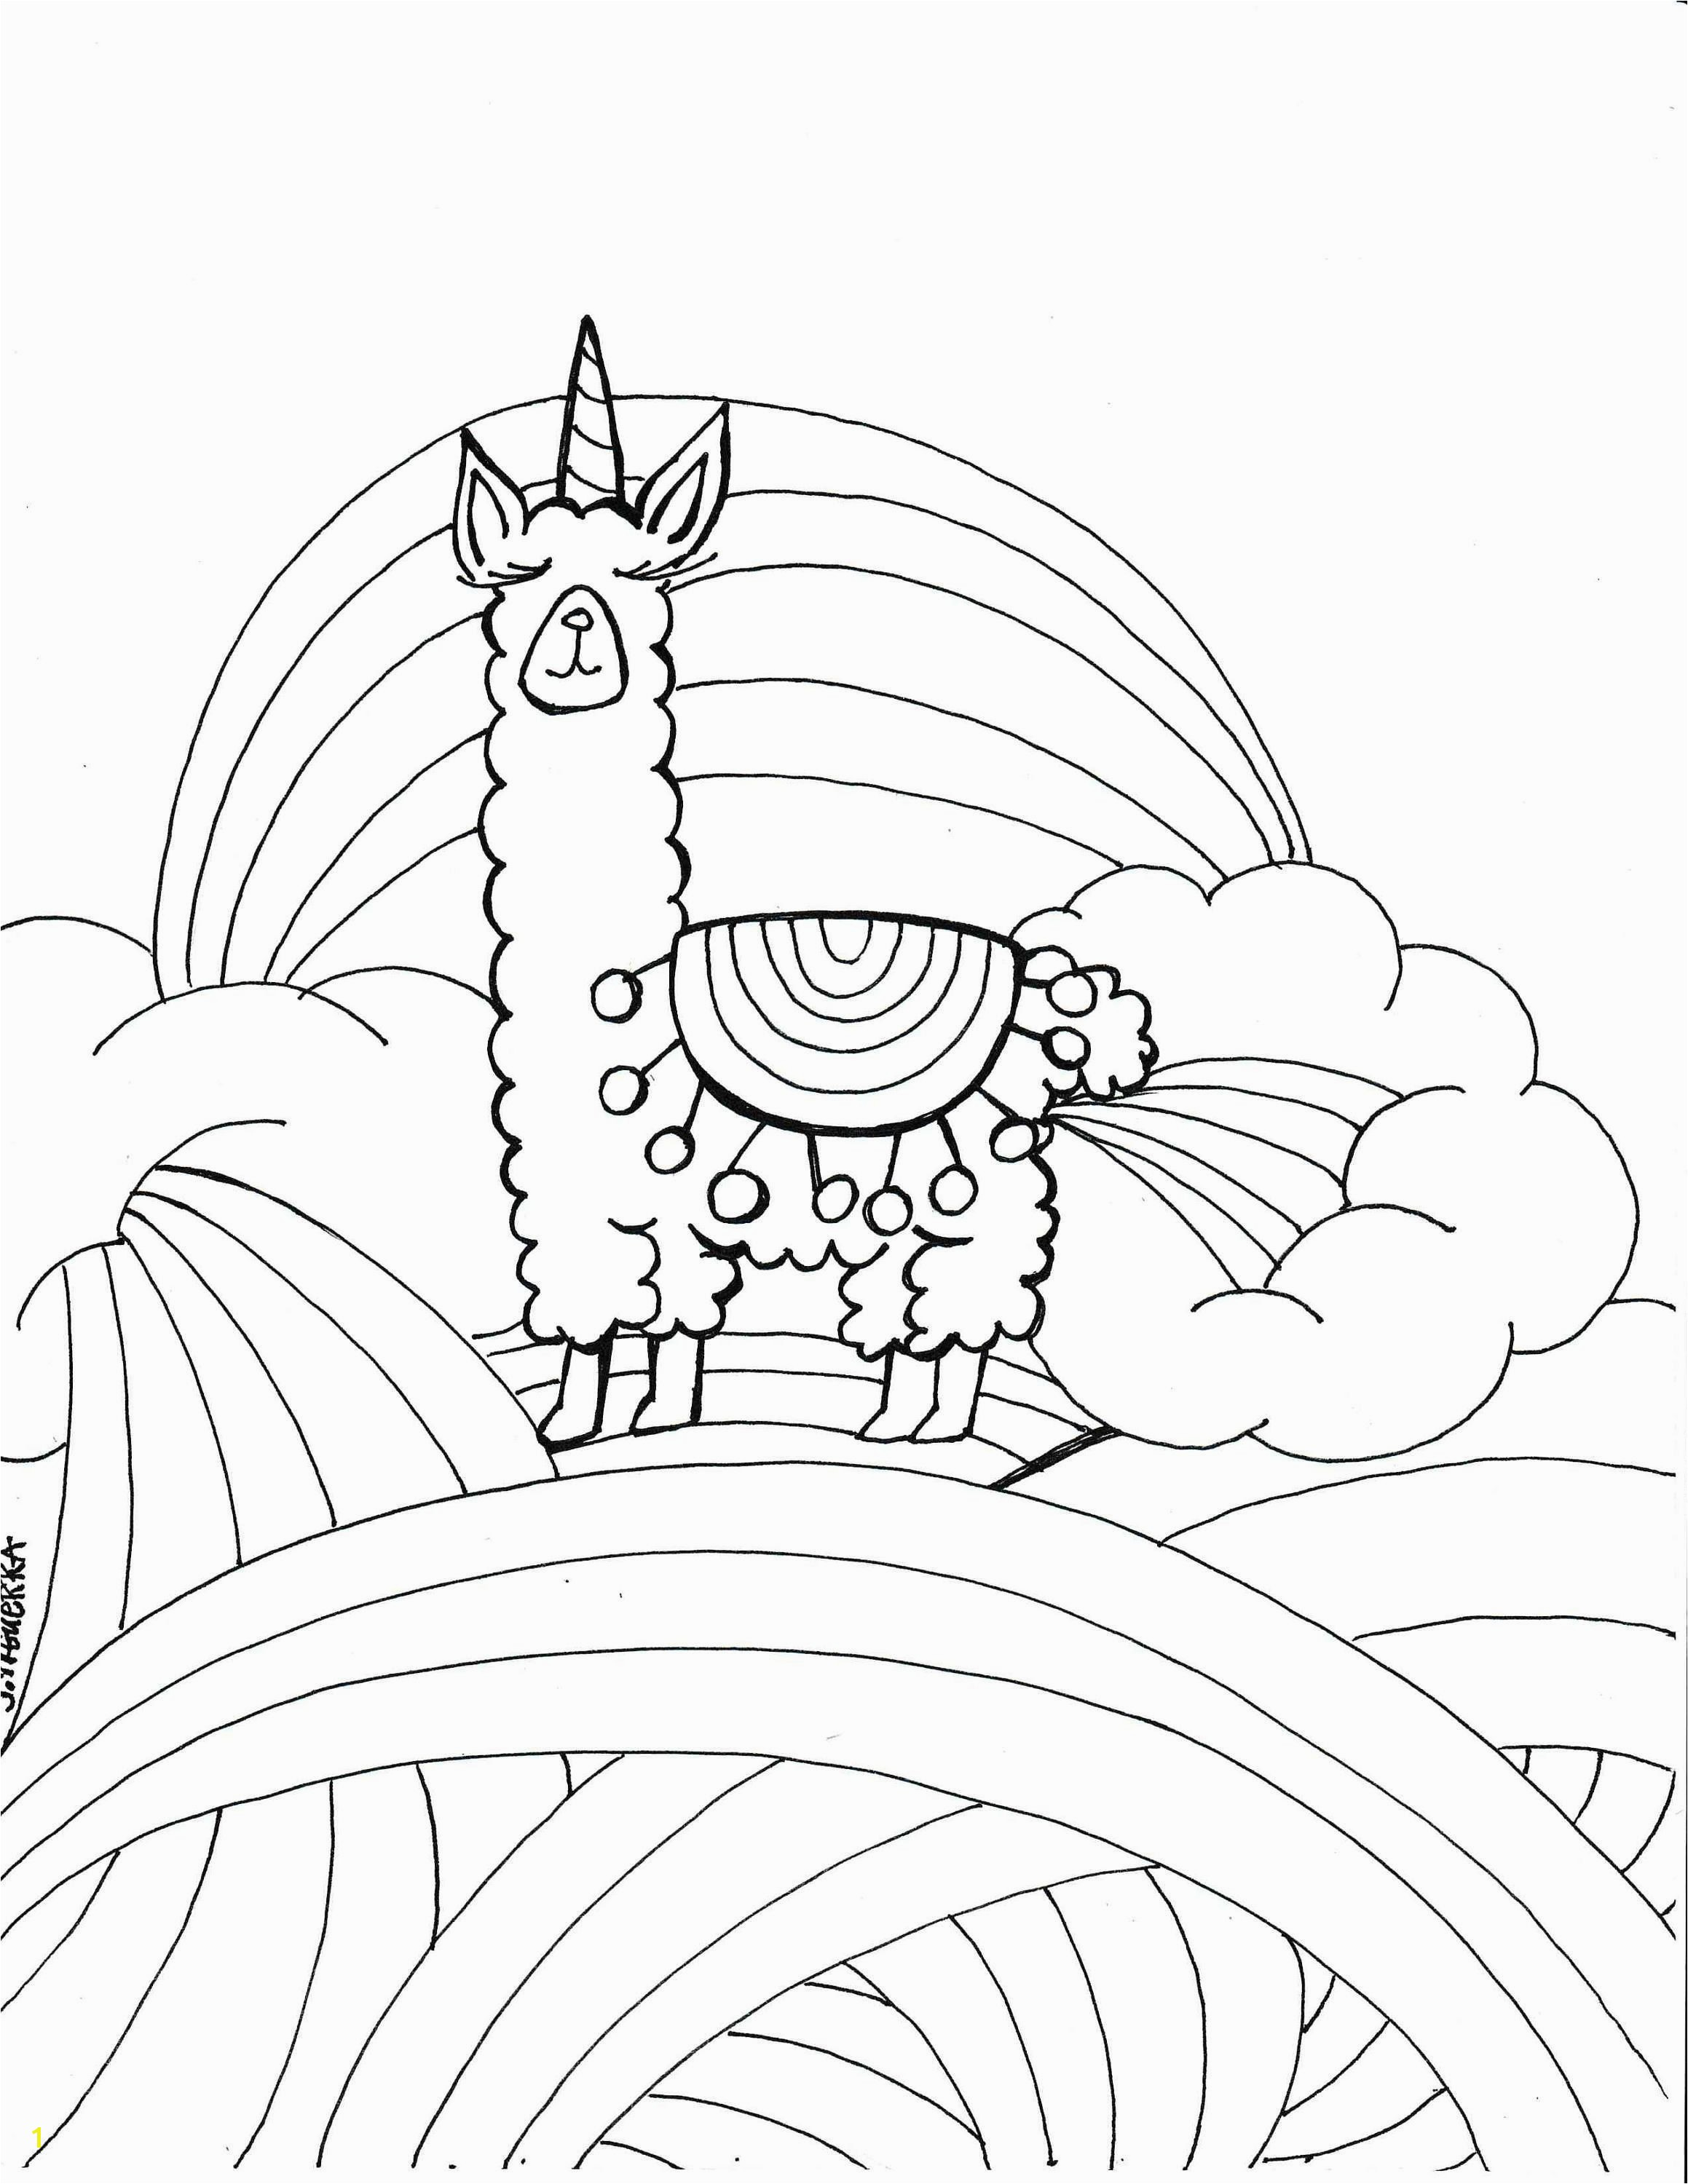 Hawaii Coloring Pages New S S Media Cache Ak0 Pinimg Originals 0d 1dhawaii Coloring Pages